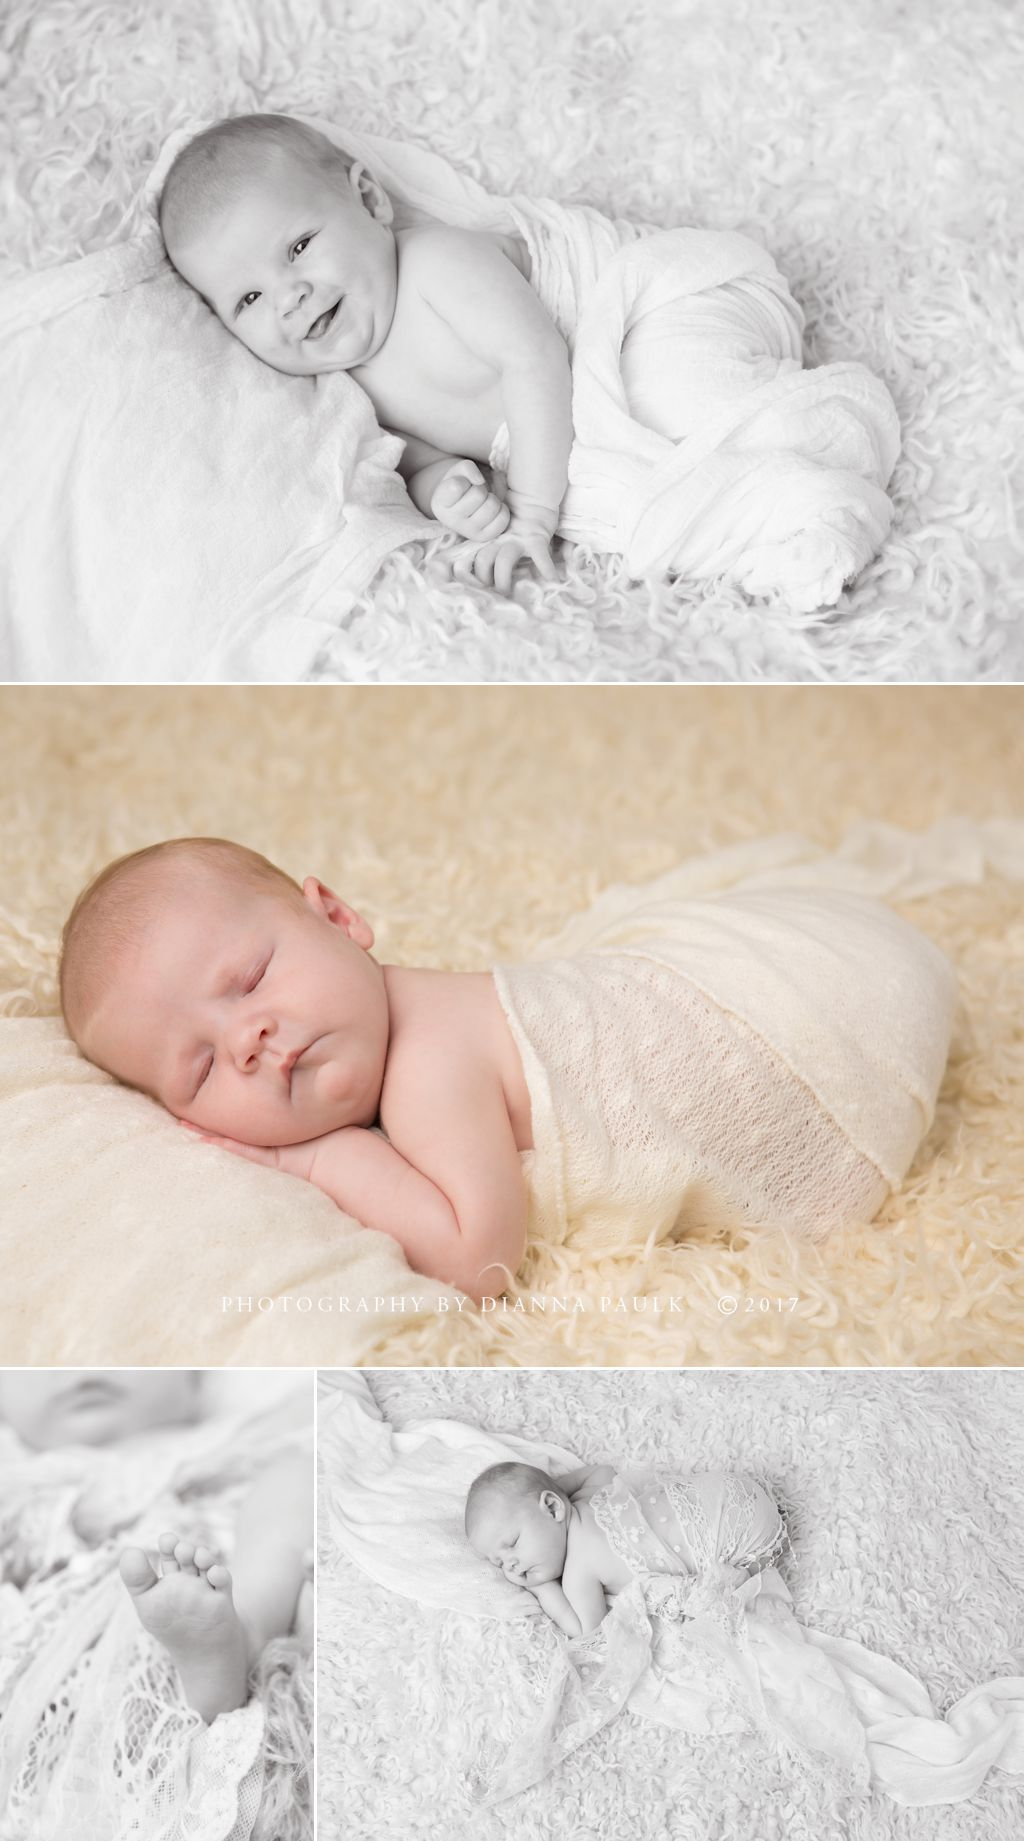 Newborn portrait session; Photography by DiAnna Paulk, a certified professional photographer in Montgomery AL